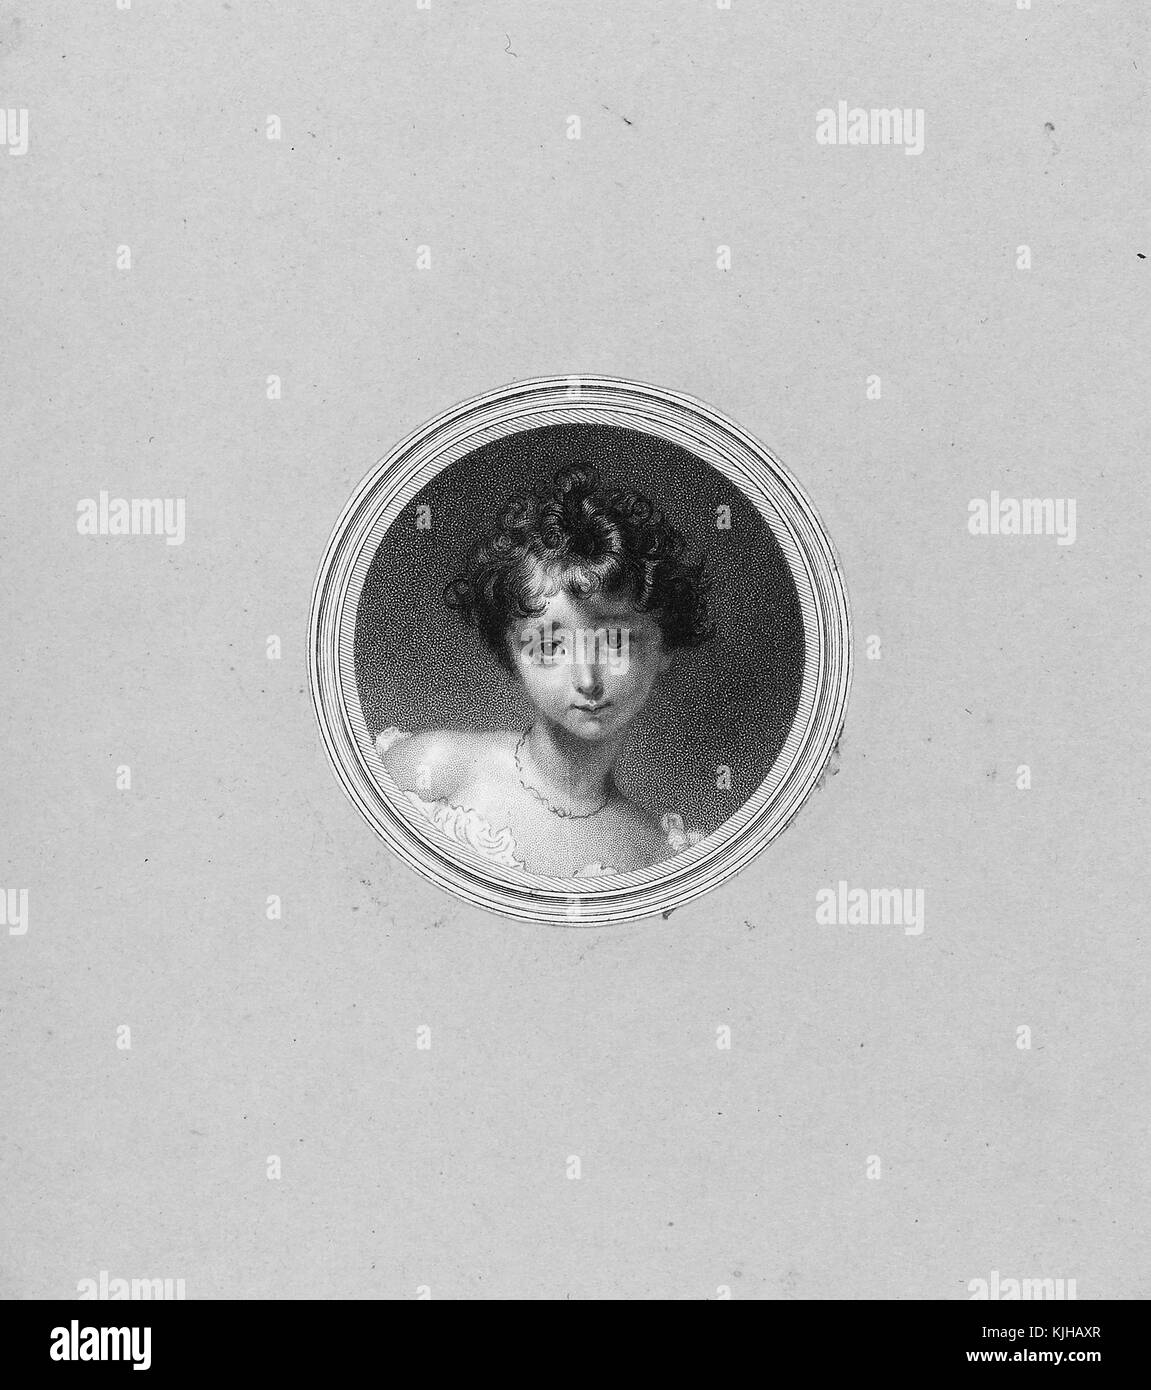 An etching from a portrait of a young Ada Lovelace, she was the only legitimate child of Lord Byron, she wrote the - Stock Image